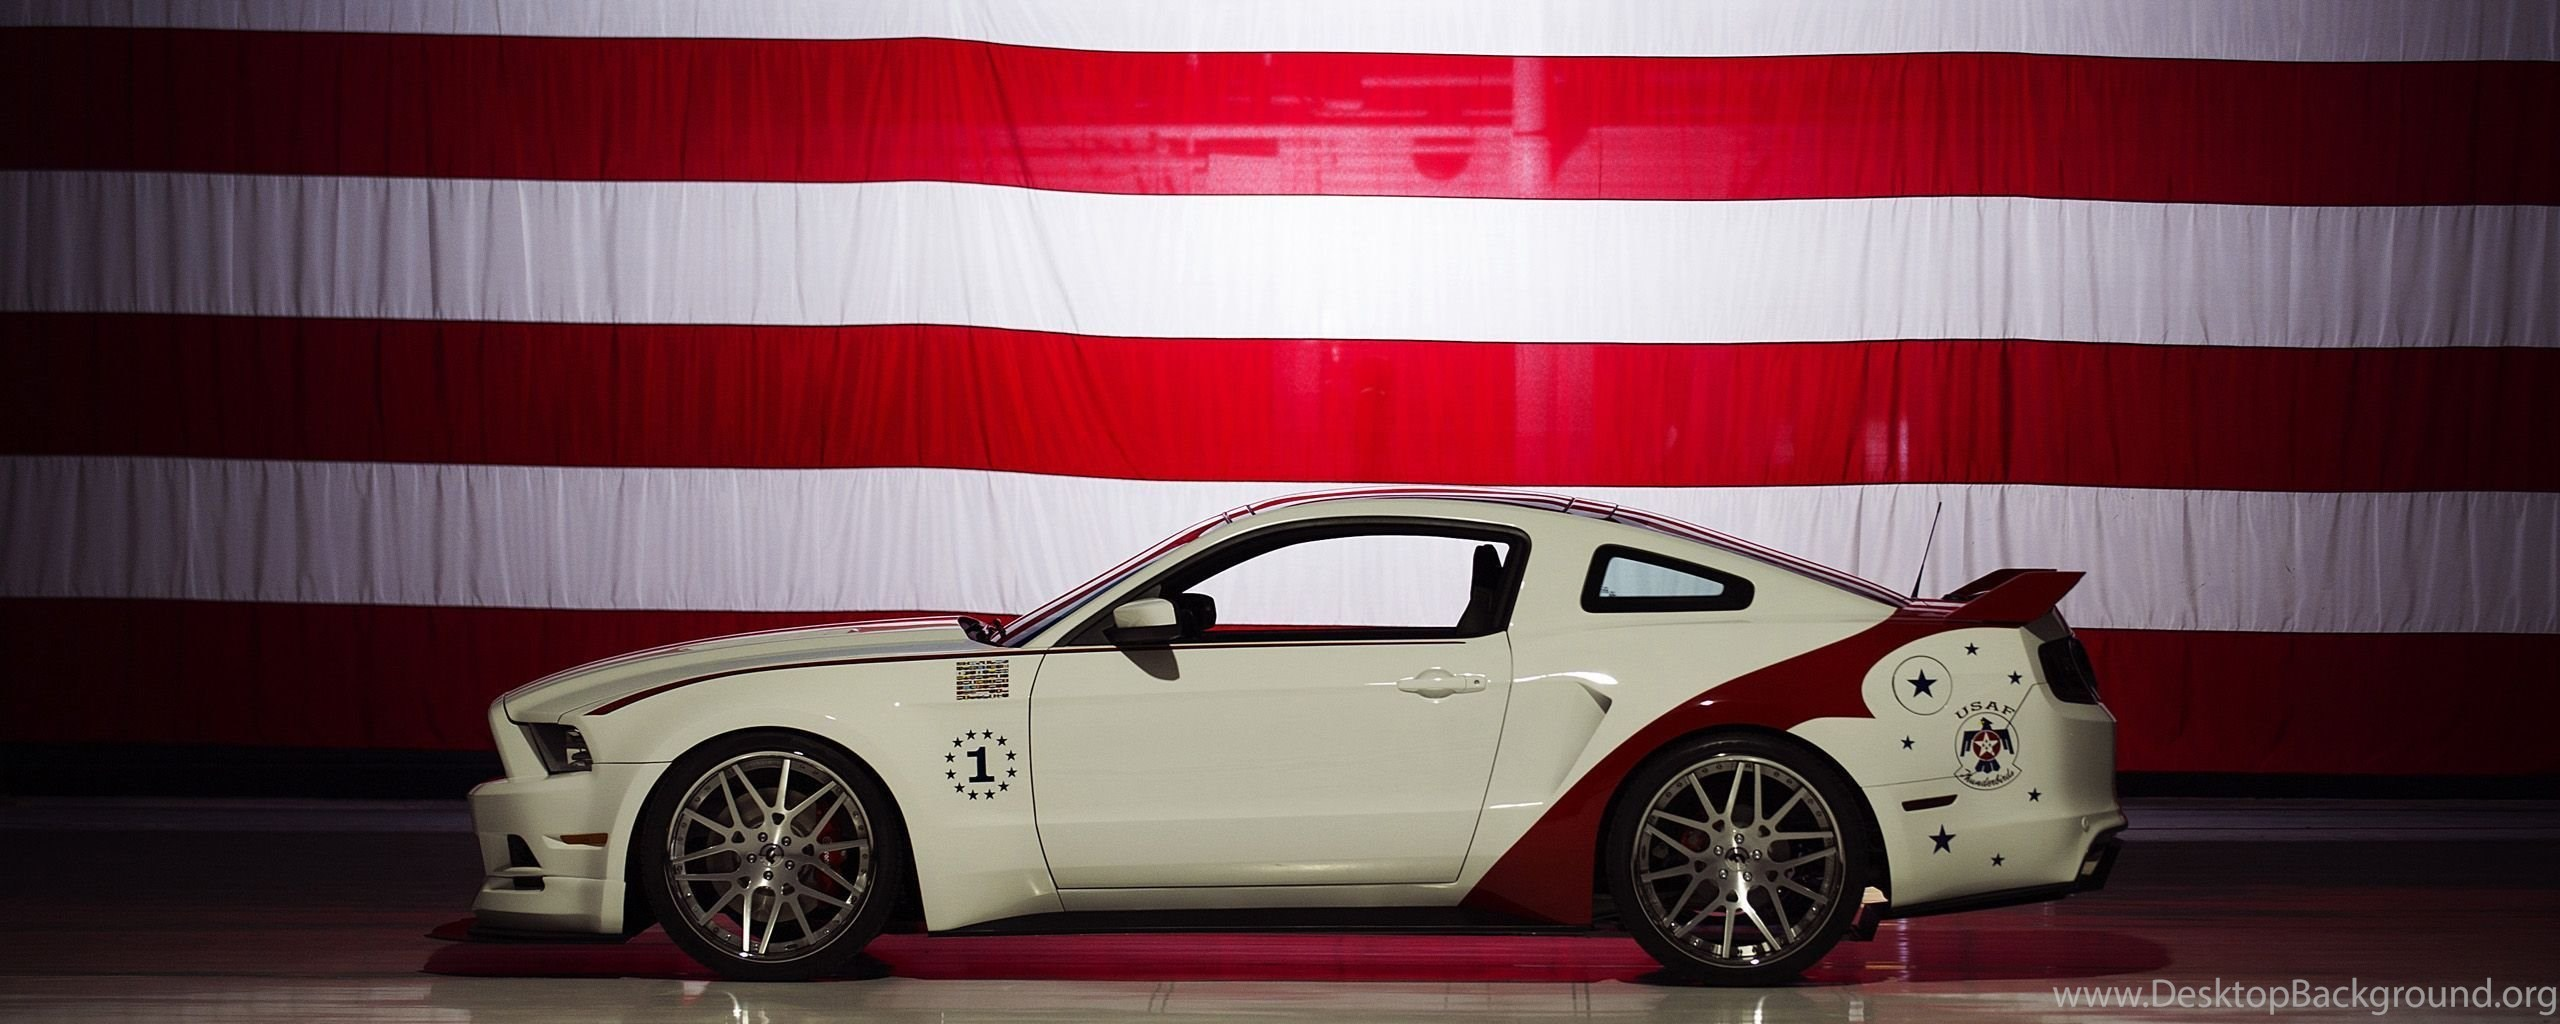 2014 Us Air Force Thunderbirds Edition Ford Mustang Gt Wallpapers